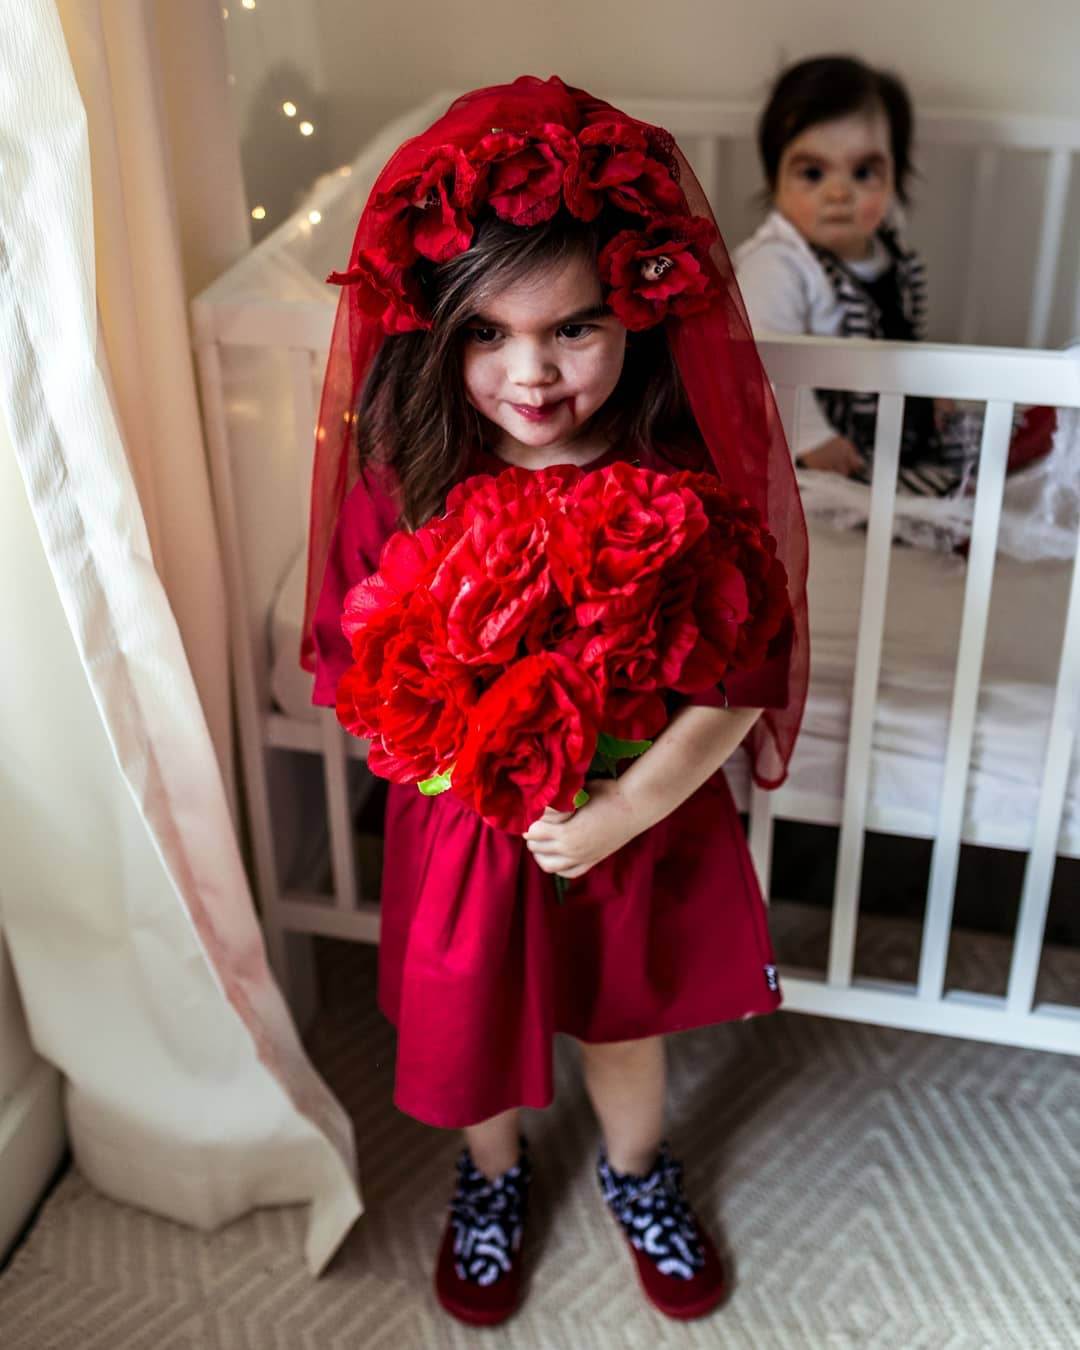 Vampire bride ready for Party.